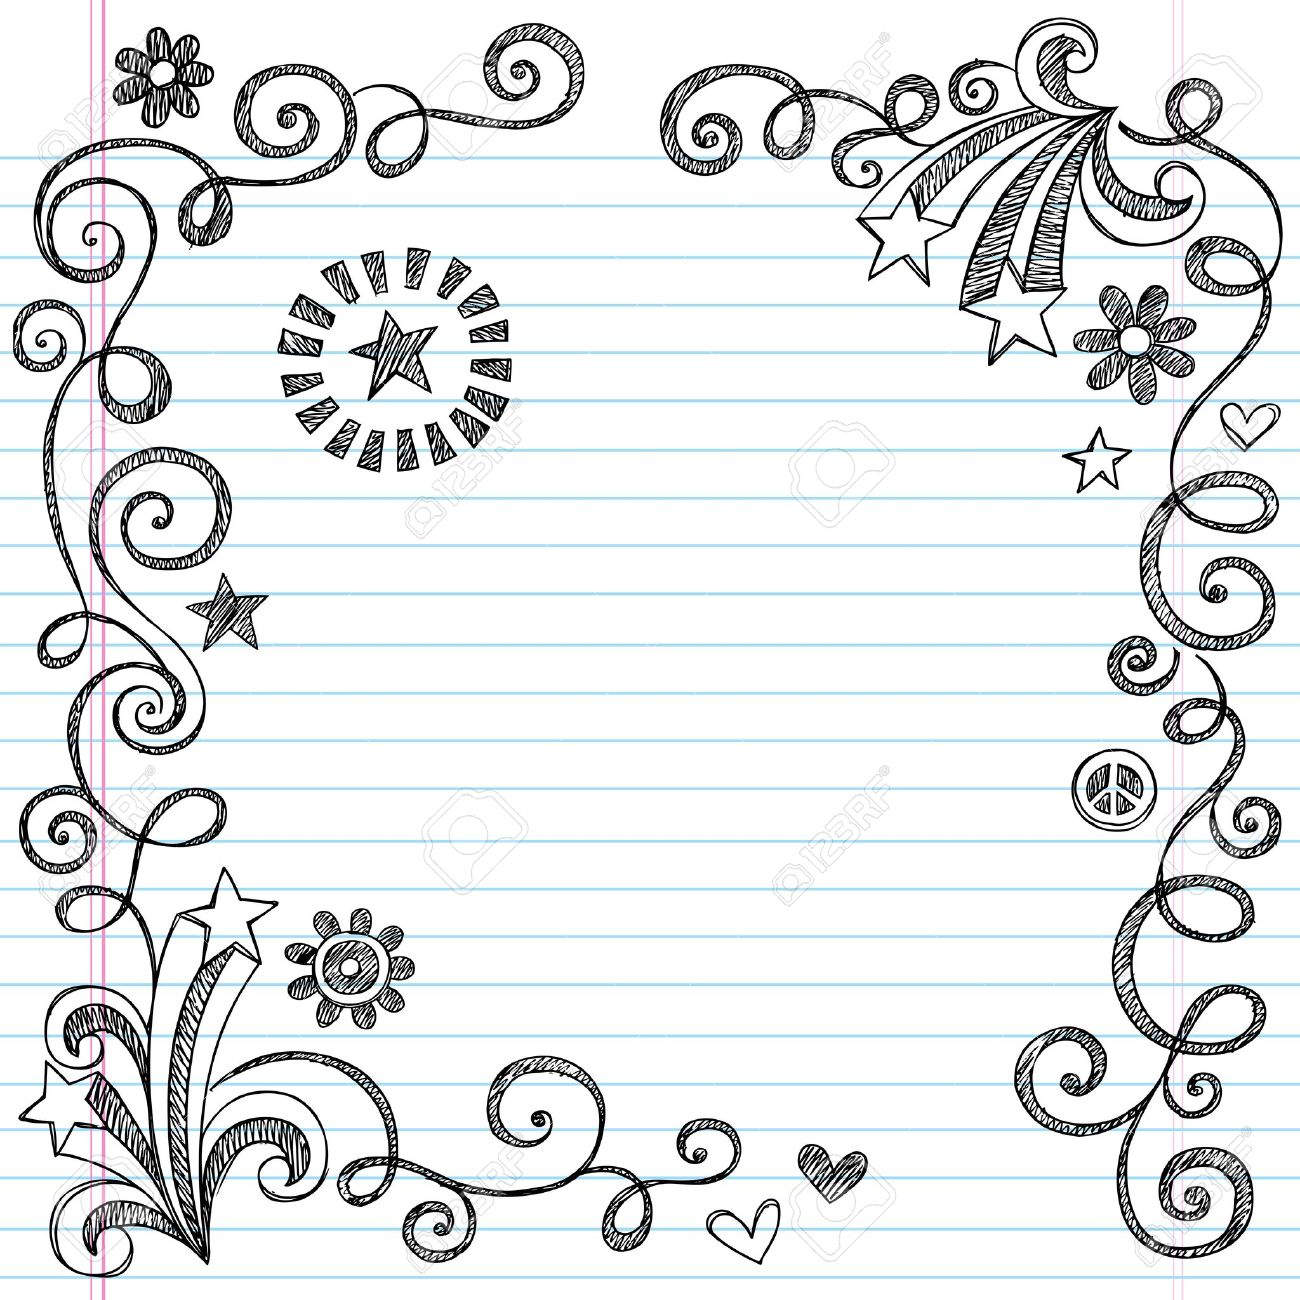 Back To School Sketchy Notebook Doodle Border With Stars And – Lined Border Paper